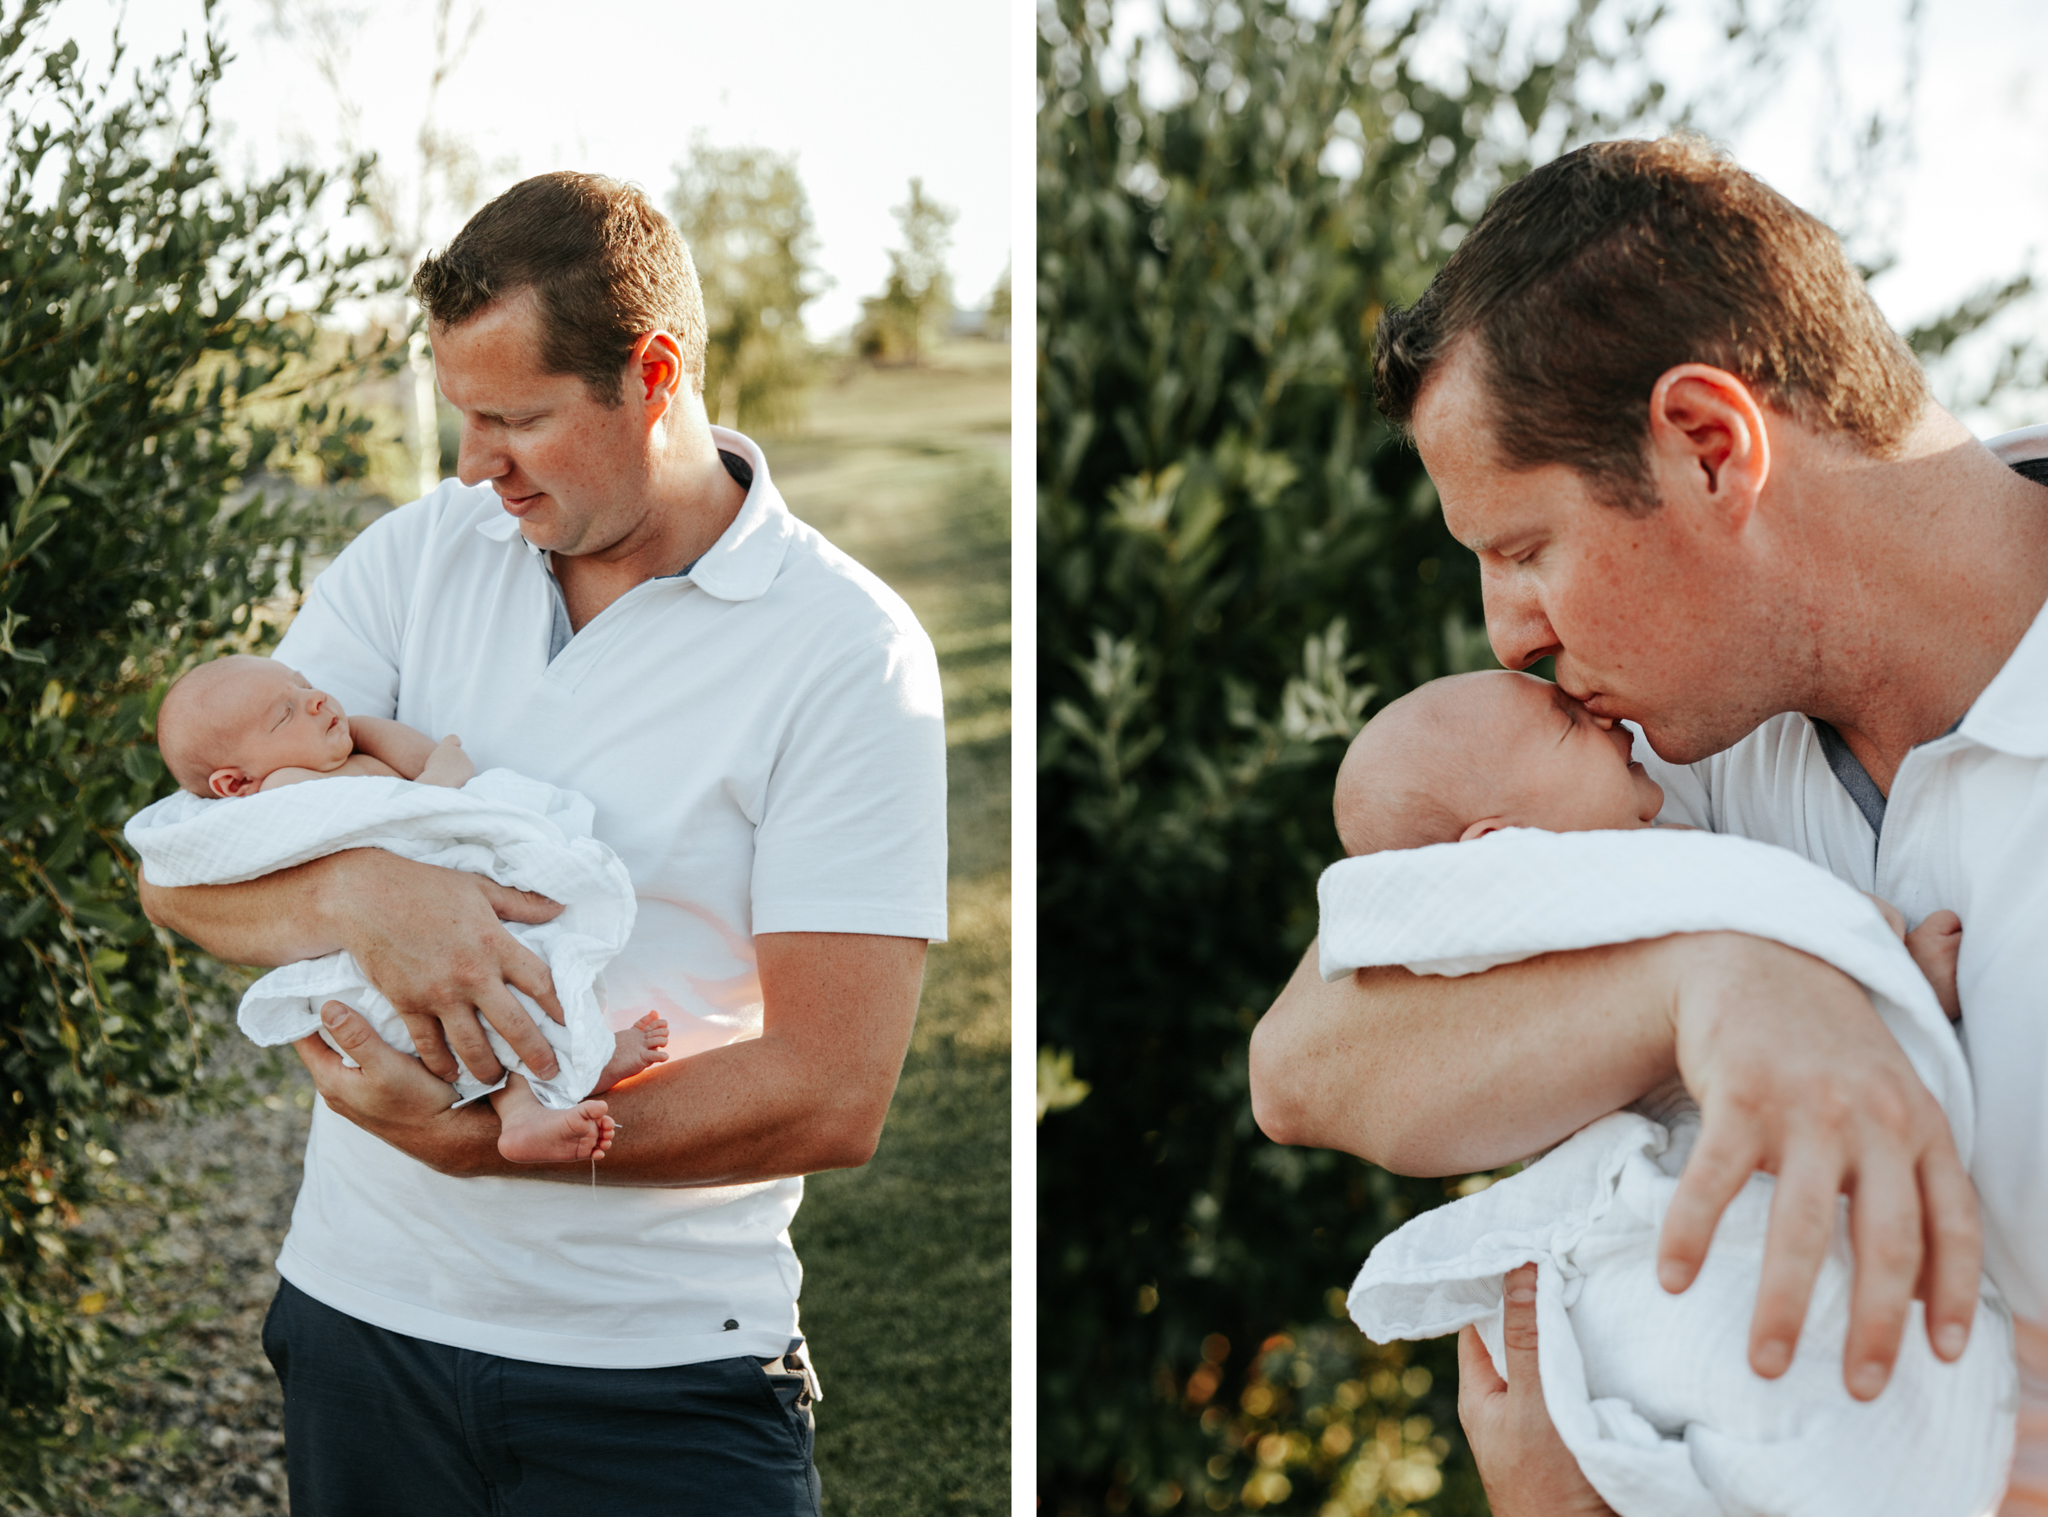 lethbridge-birth-photographer-love-and-be-loved-photography-daxon-newborn-picture-image-photo-36-2.jpg